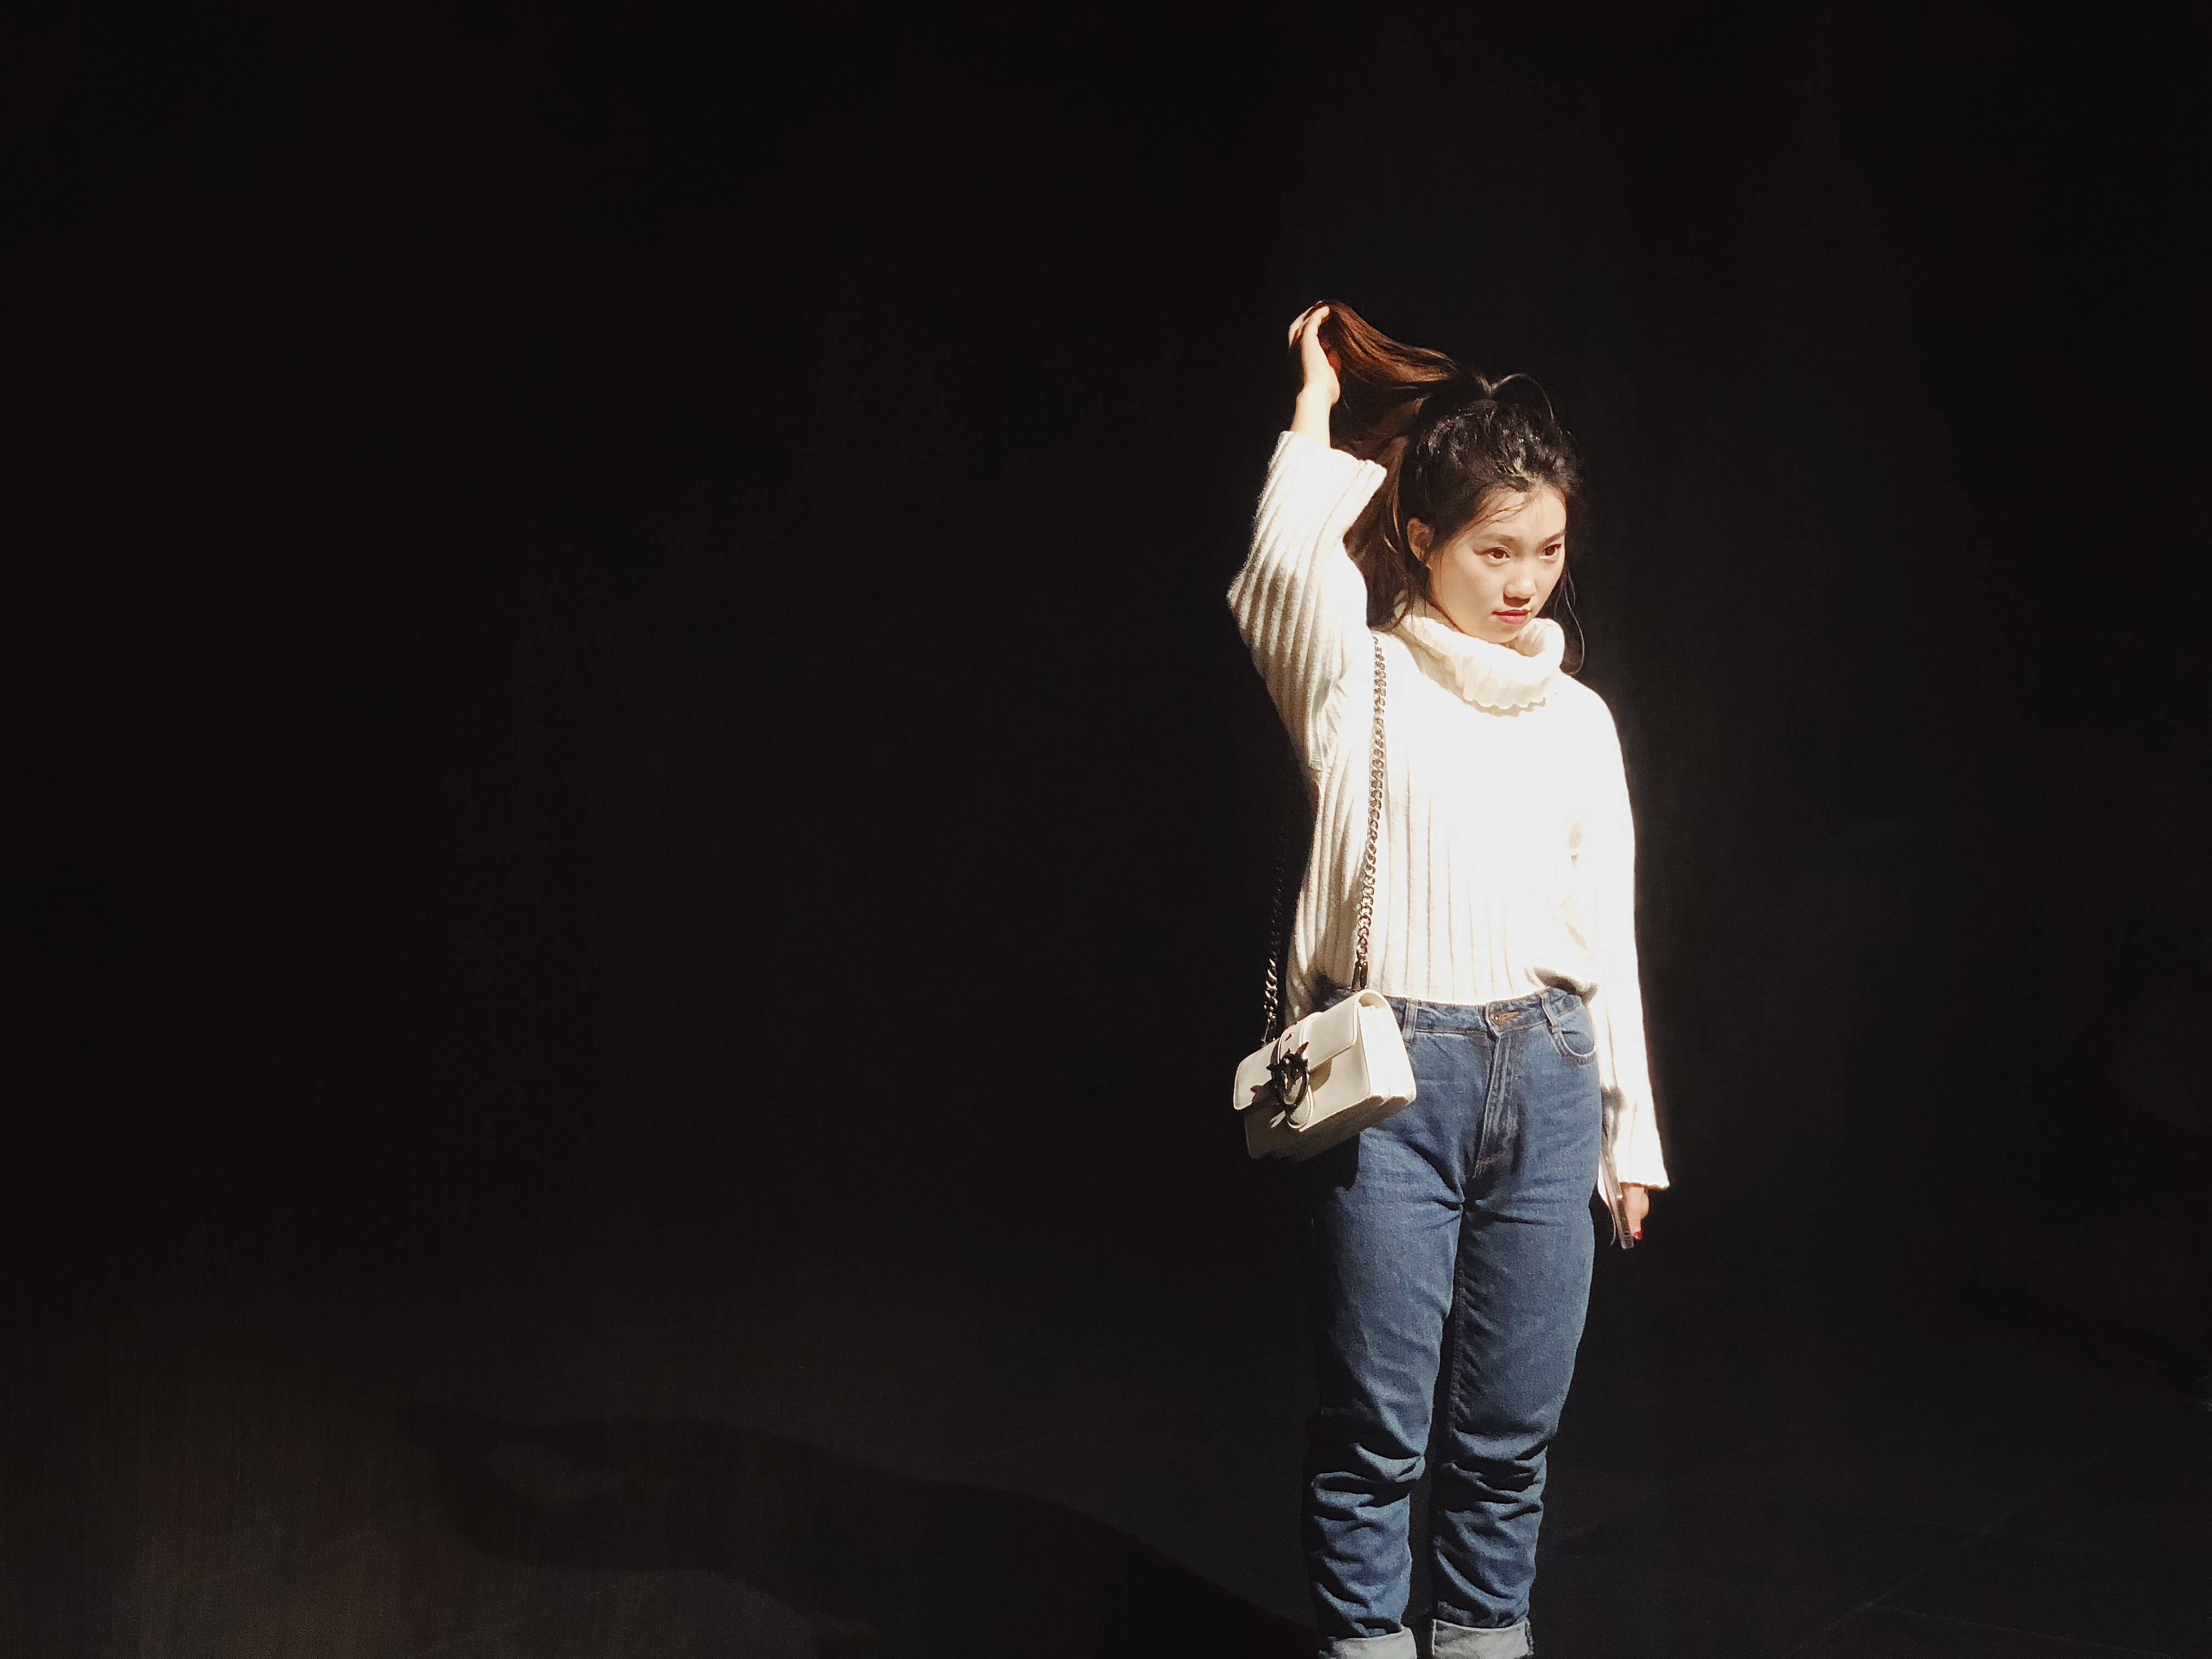 woman standing while holding her hair